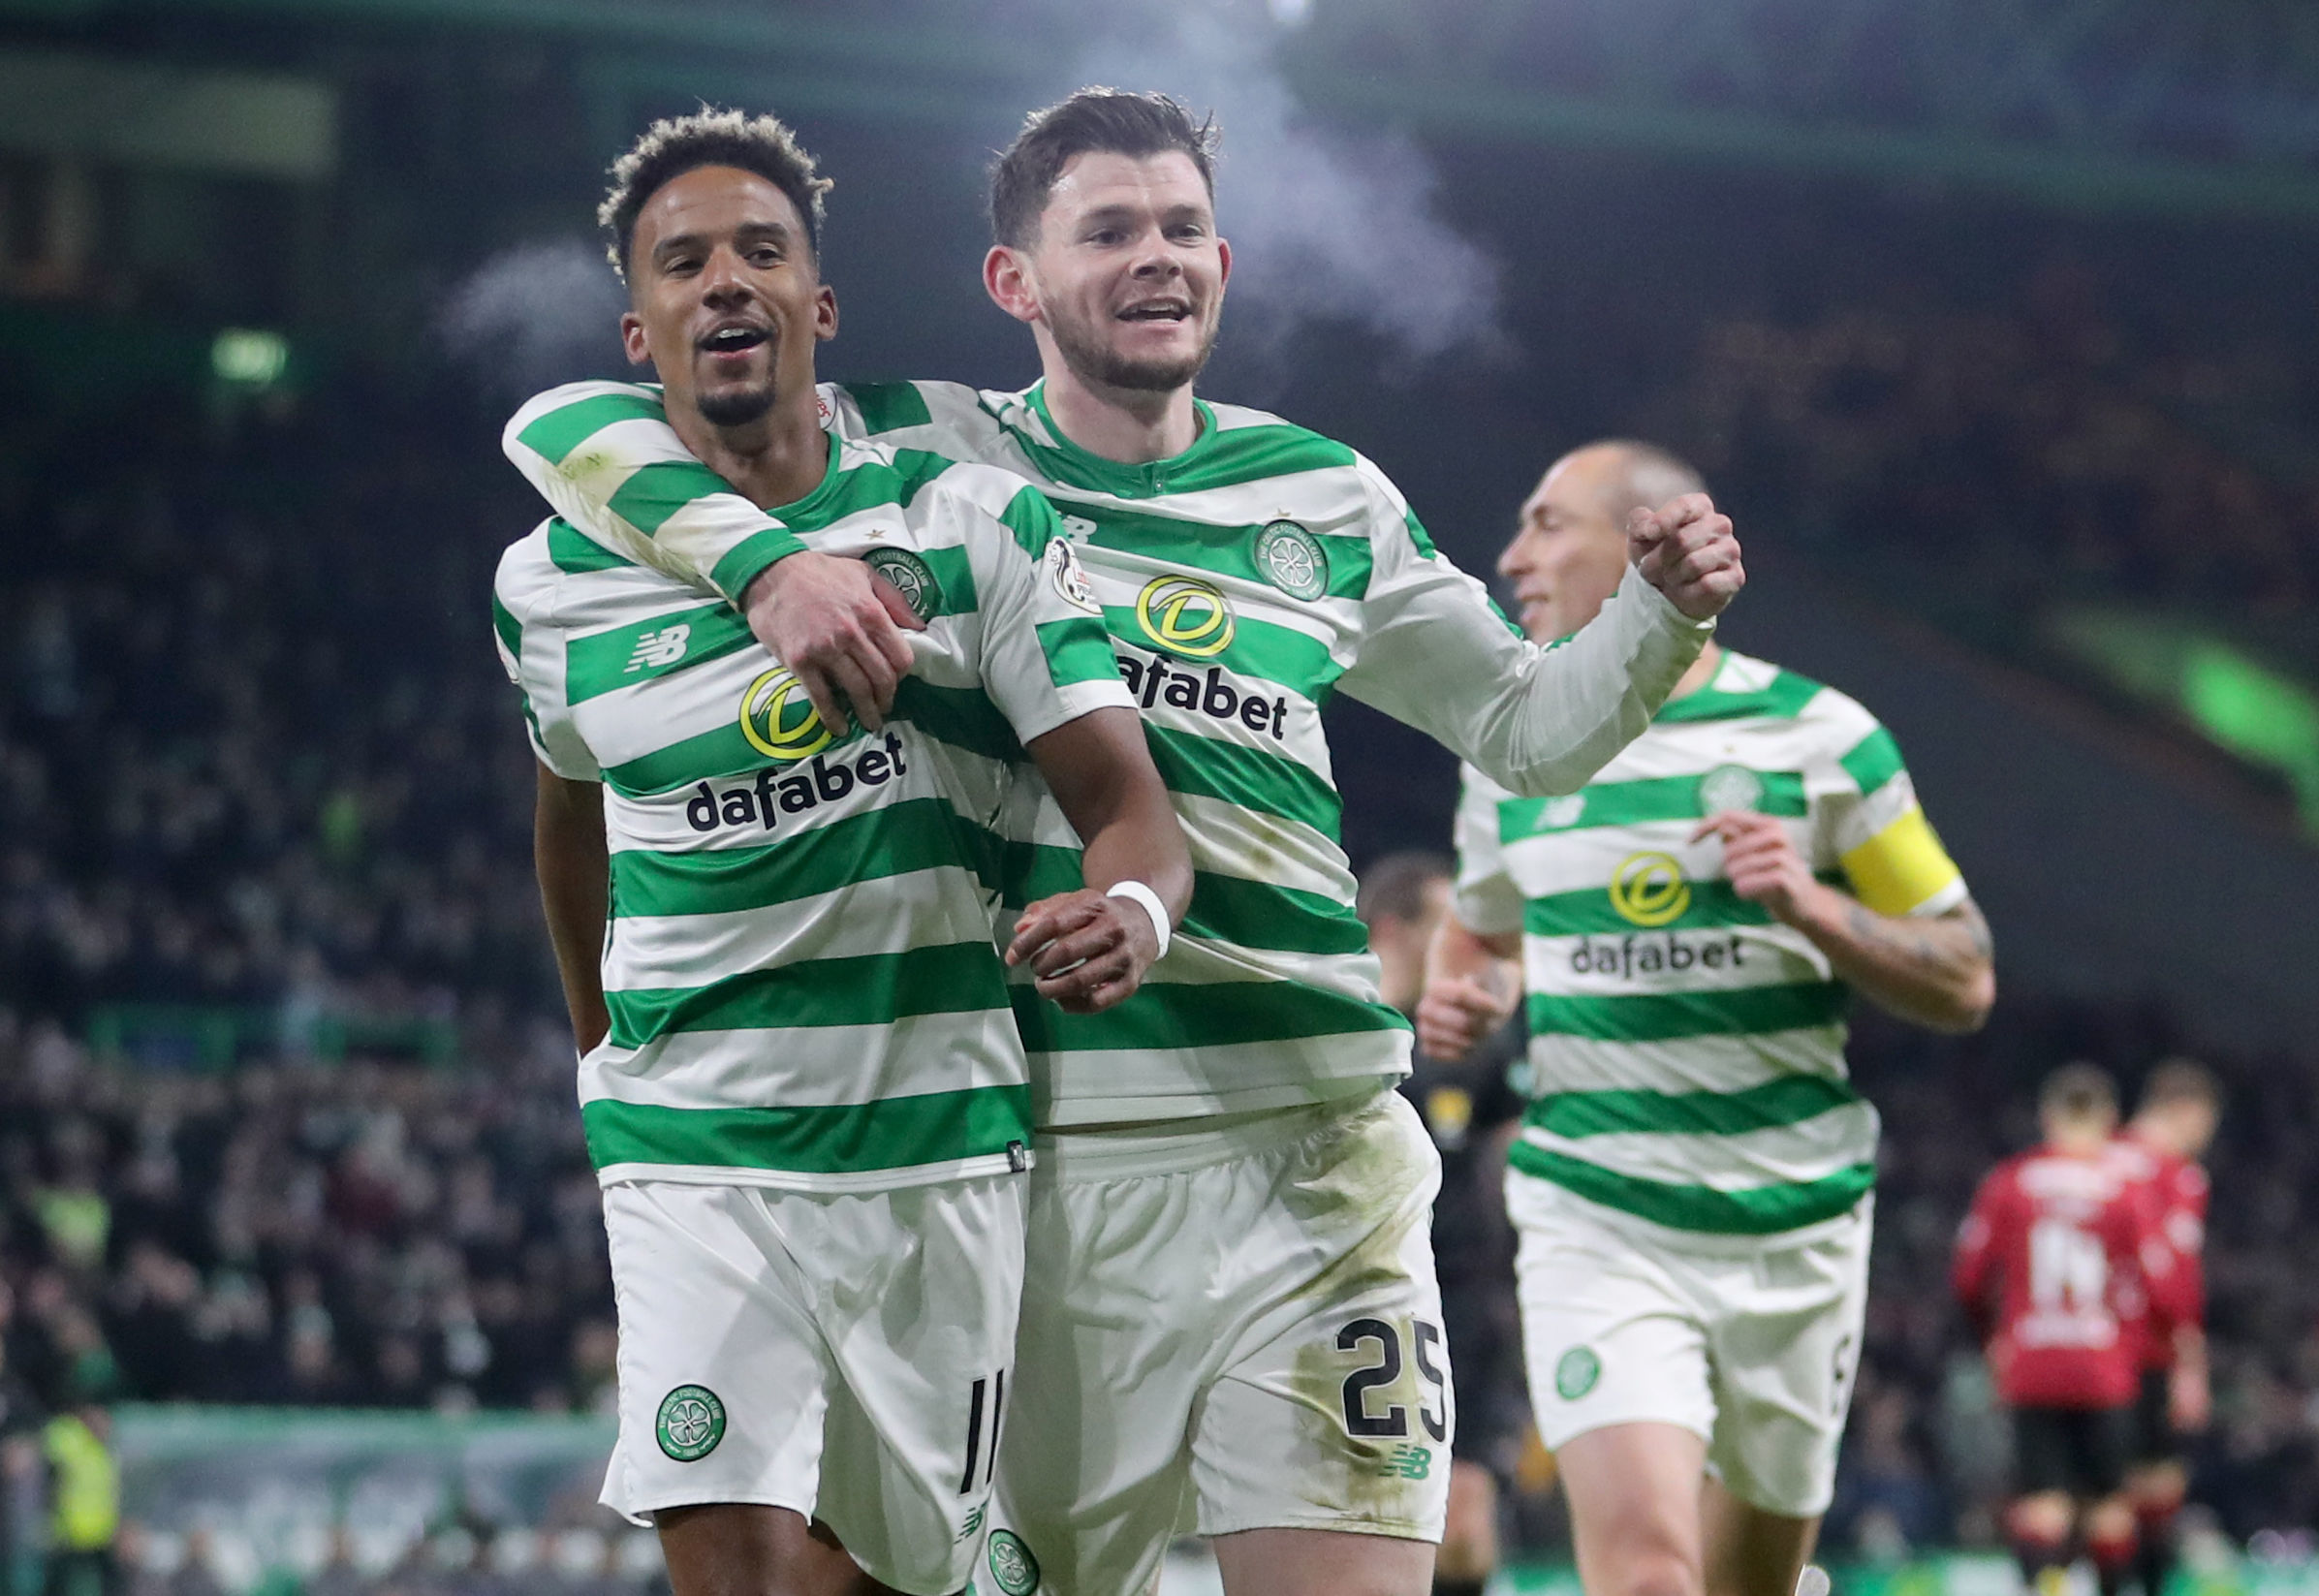 Celtic's Scott Sinclair celebrates scoring his sides second goal from a penalty with Oliver Burke (right) during the Ladbrokes Scottish Premiership match at Celtic Park, Glasgow. PRESS ASSOCIATION Photo. Picture date: Wednesday January 23, 2019. See P